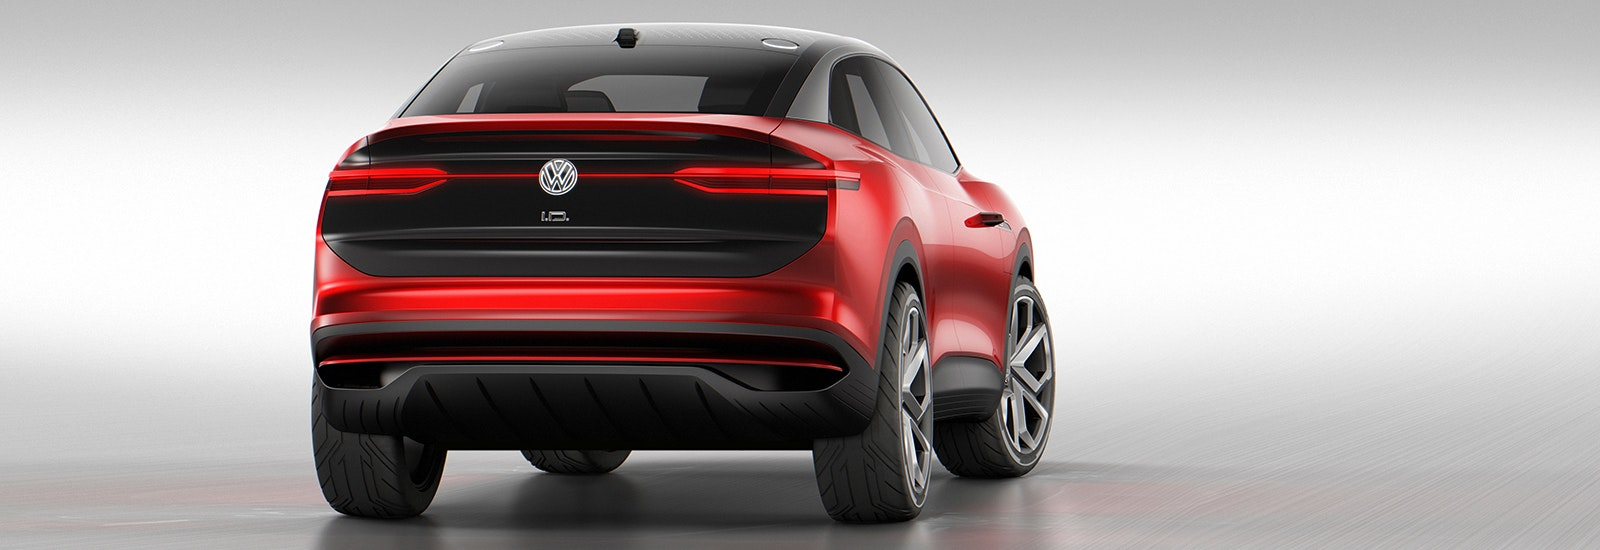 2020 Vw Id Crozz Price Specs And Release Date Carwow